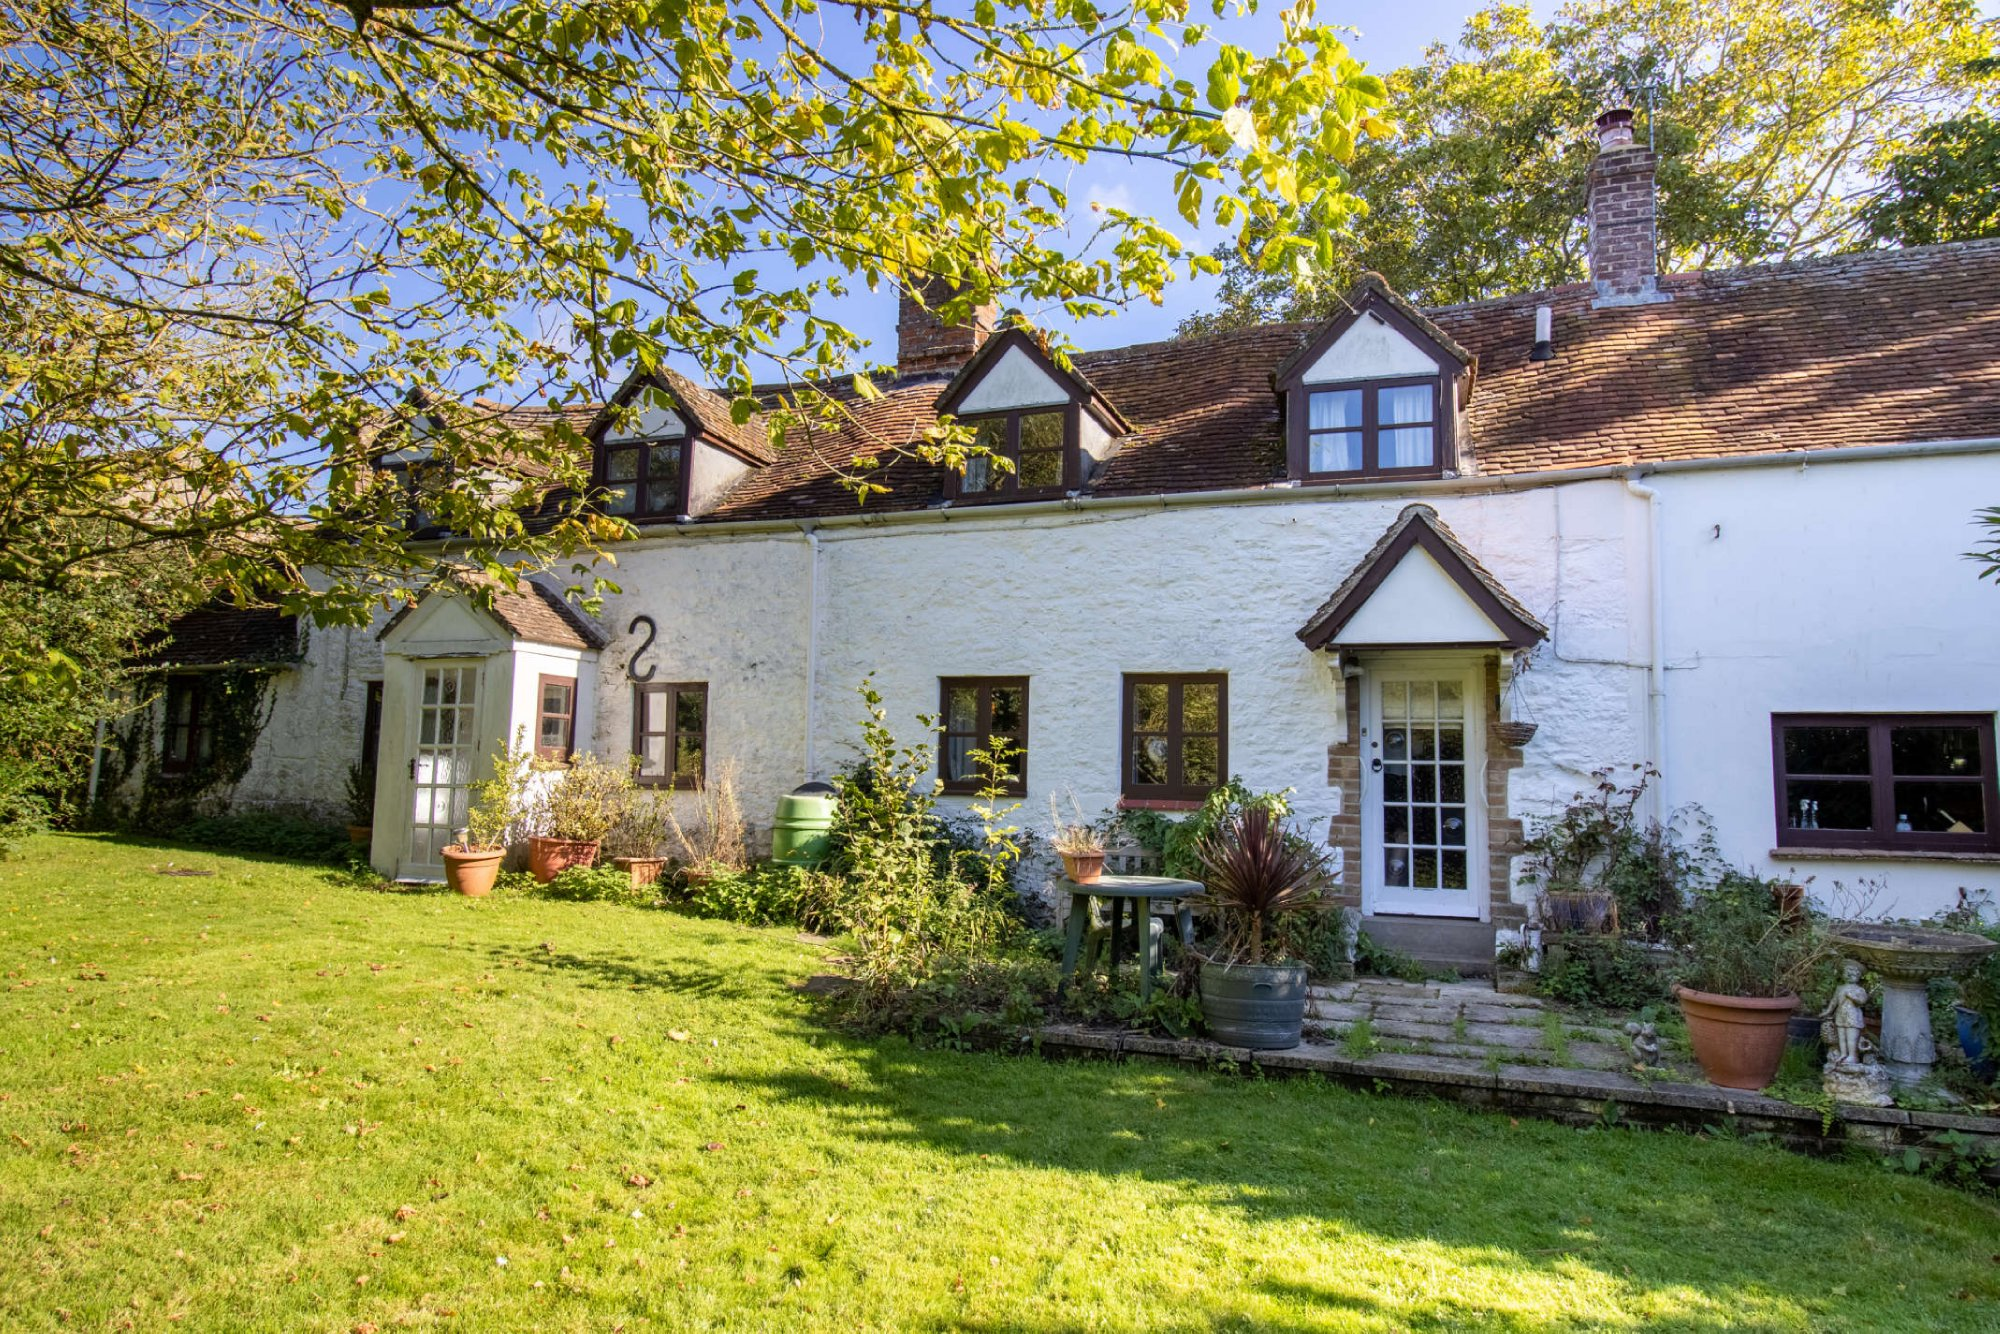 Rectory Road, Great Haseley